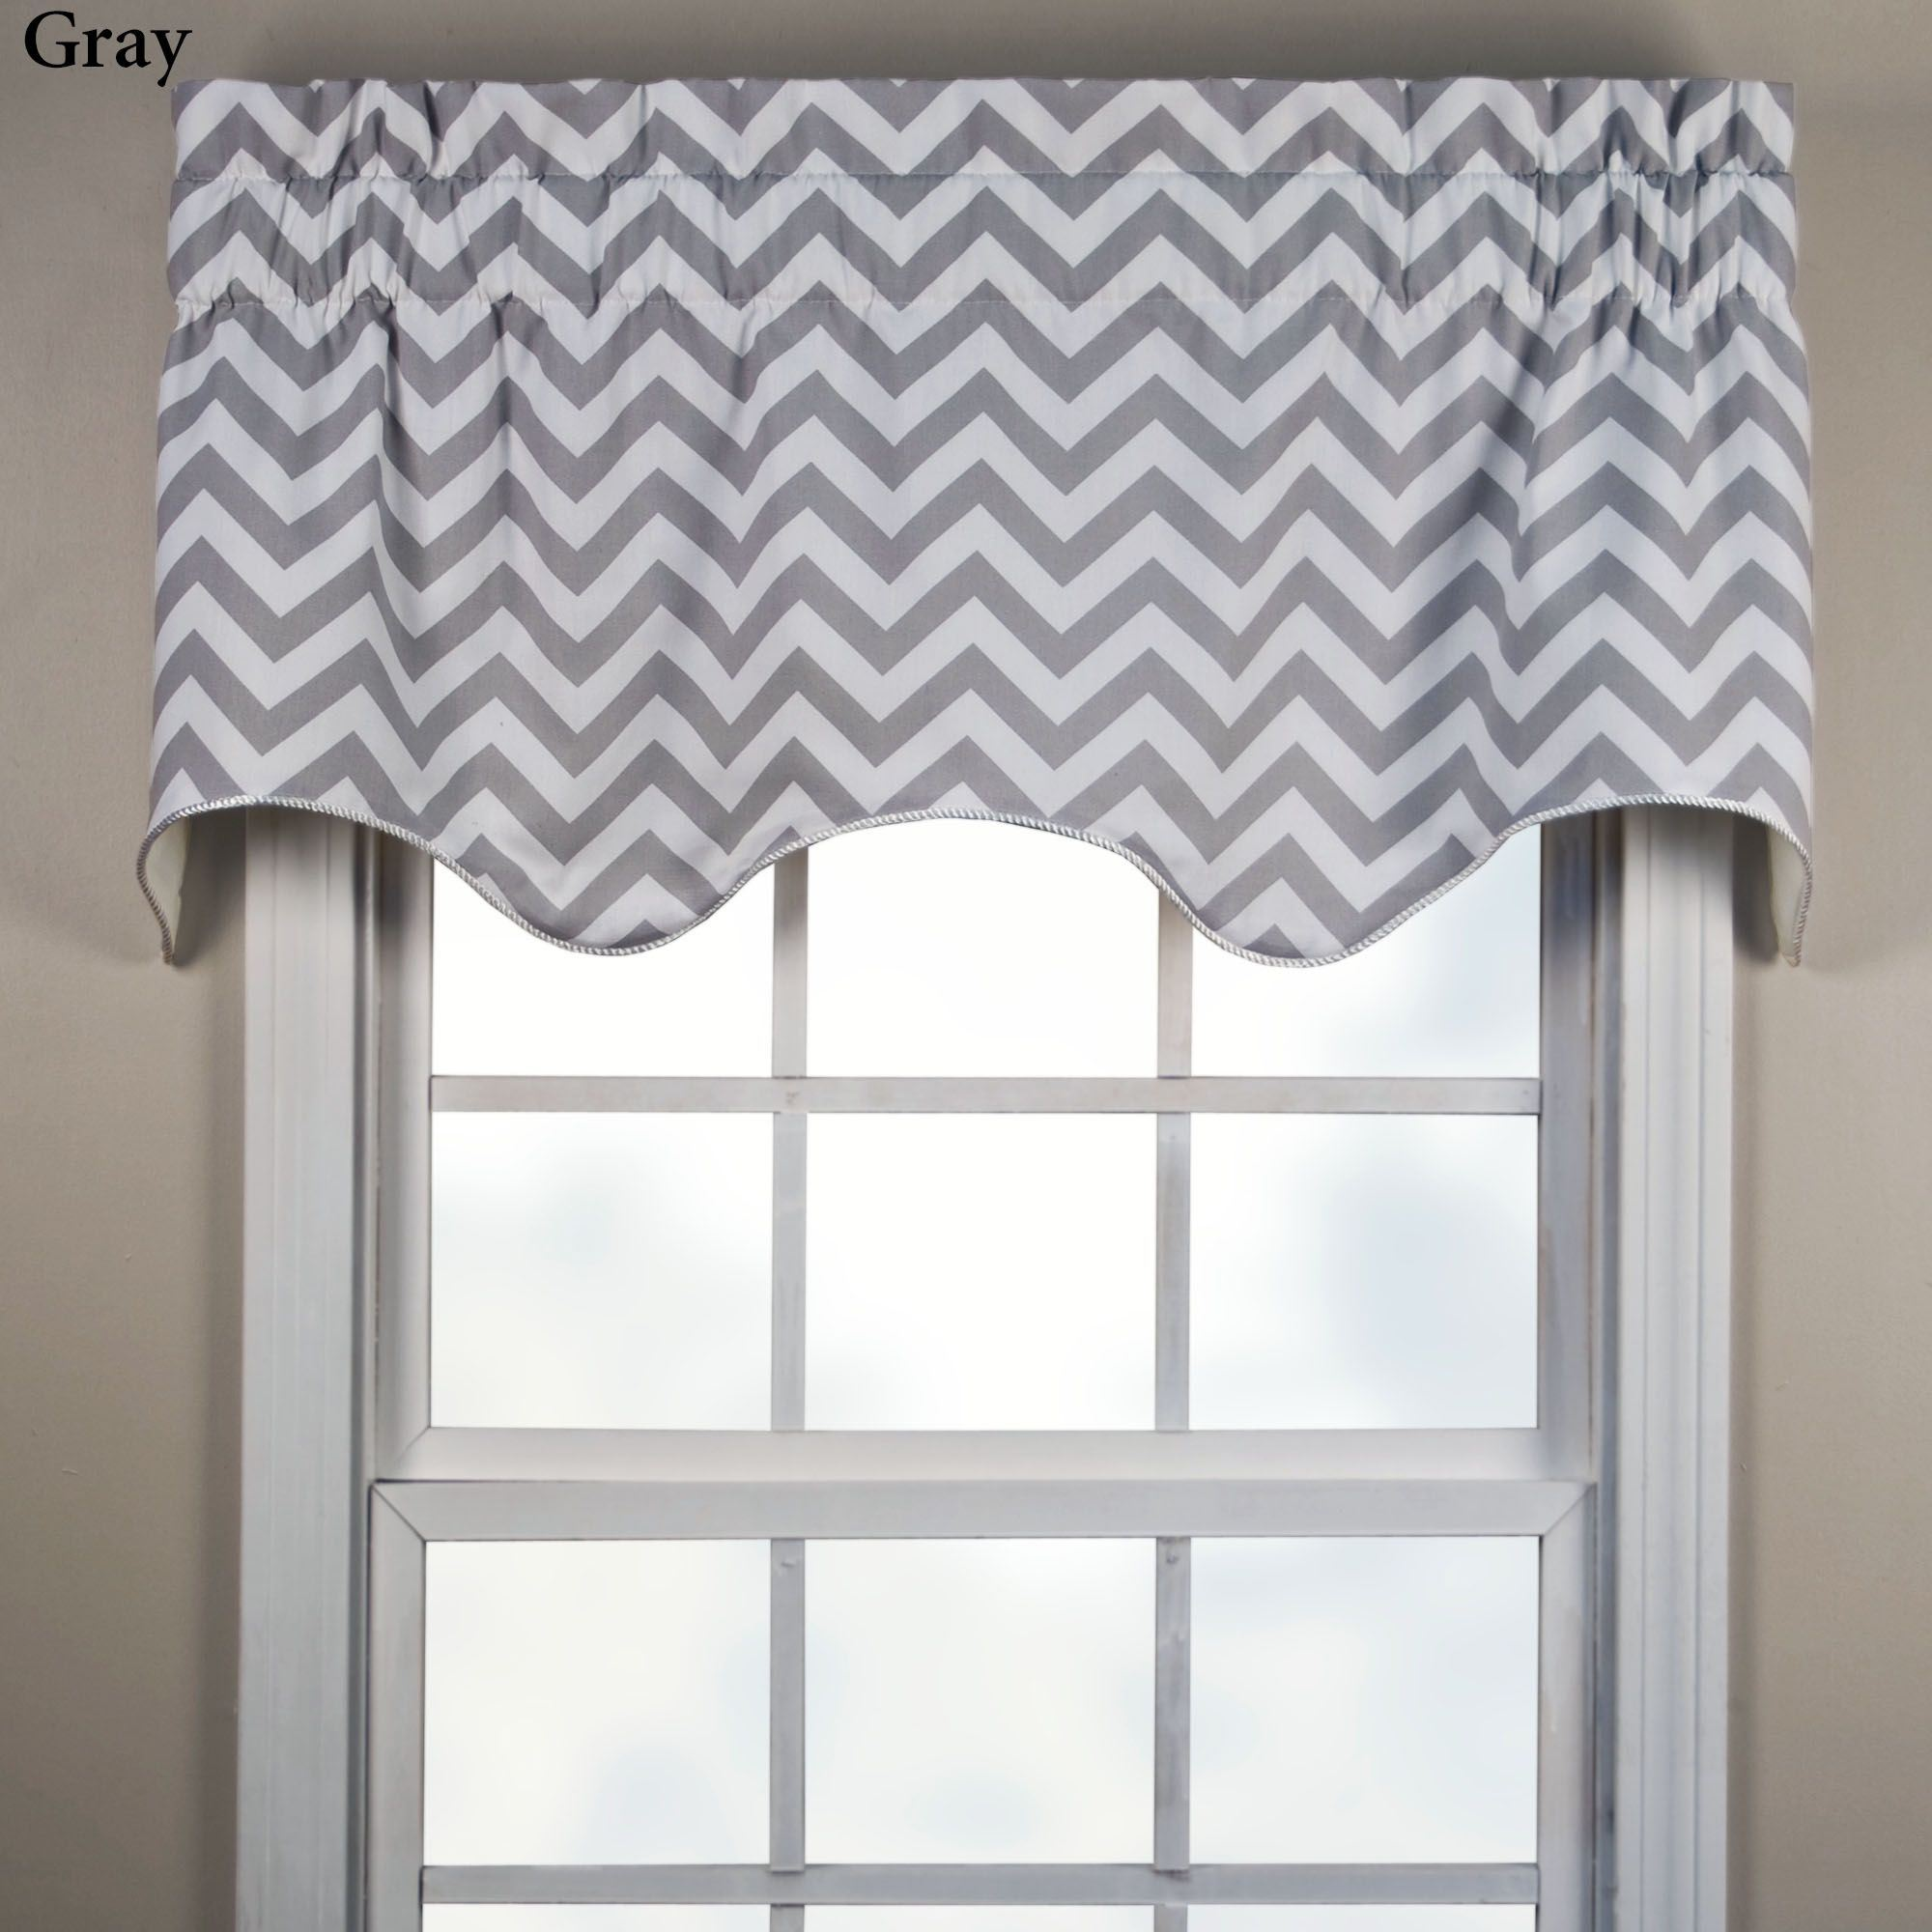 floral ip navarra walmart window windows by valances com waverly for valance traditions